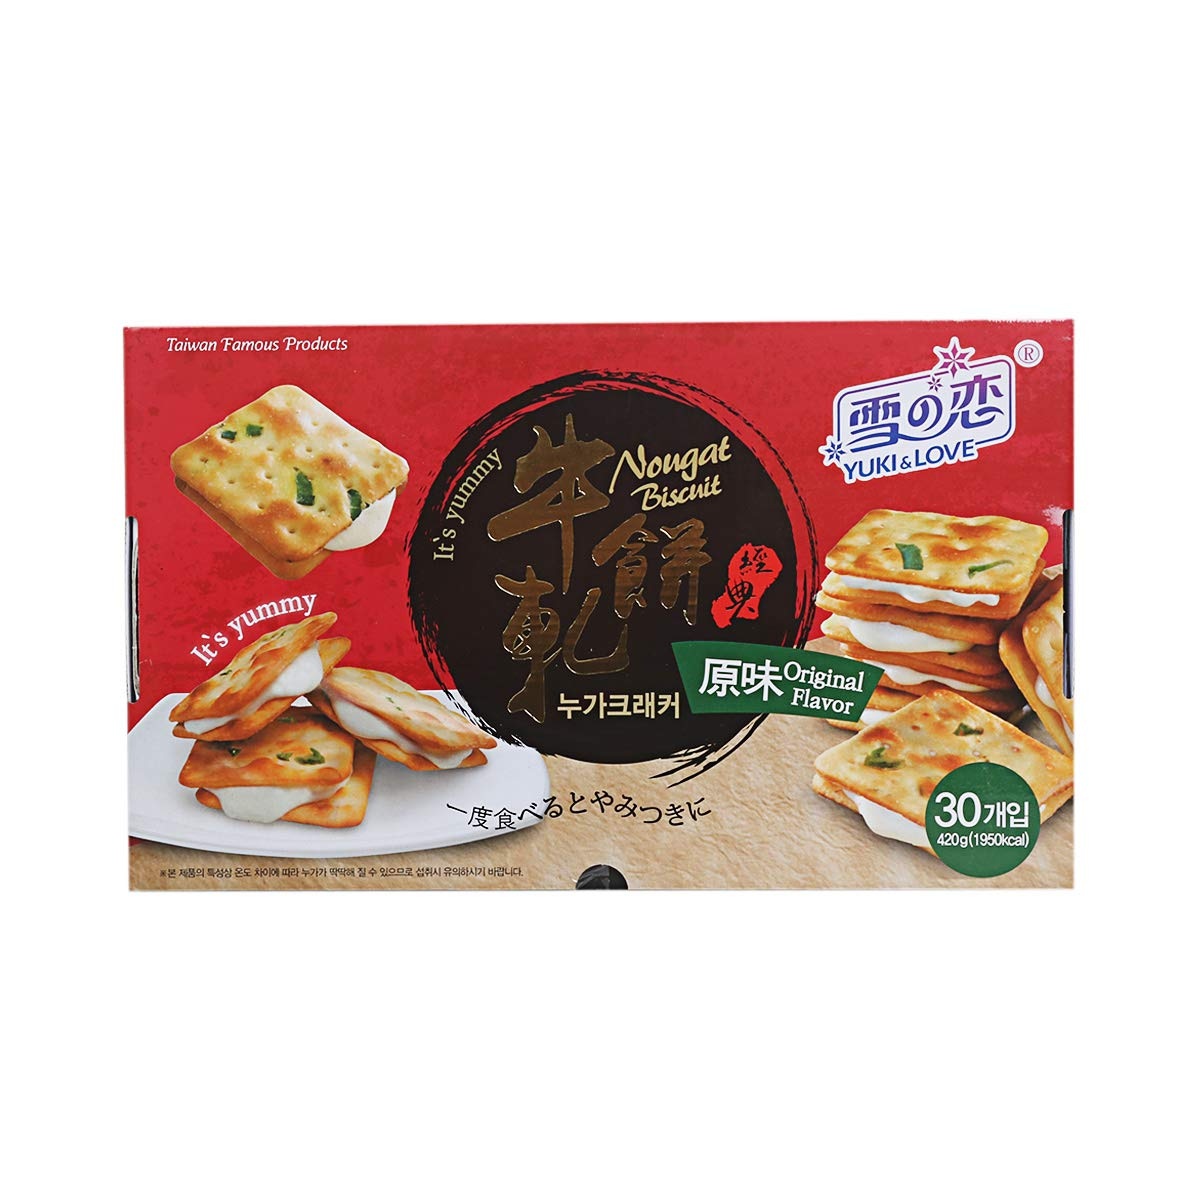 Nougat Biscuits Sweet Snack Box Original Flavor 30 Pack(420g) by World-wide CO (Image #3)